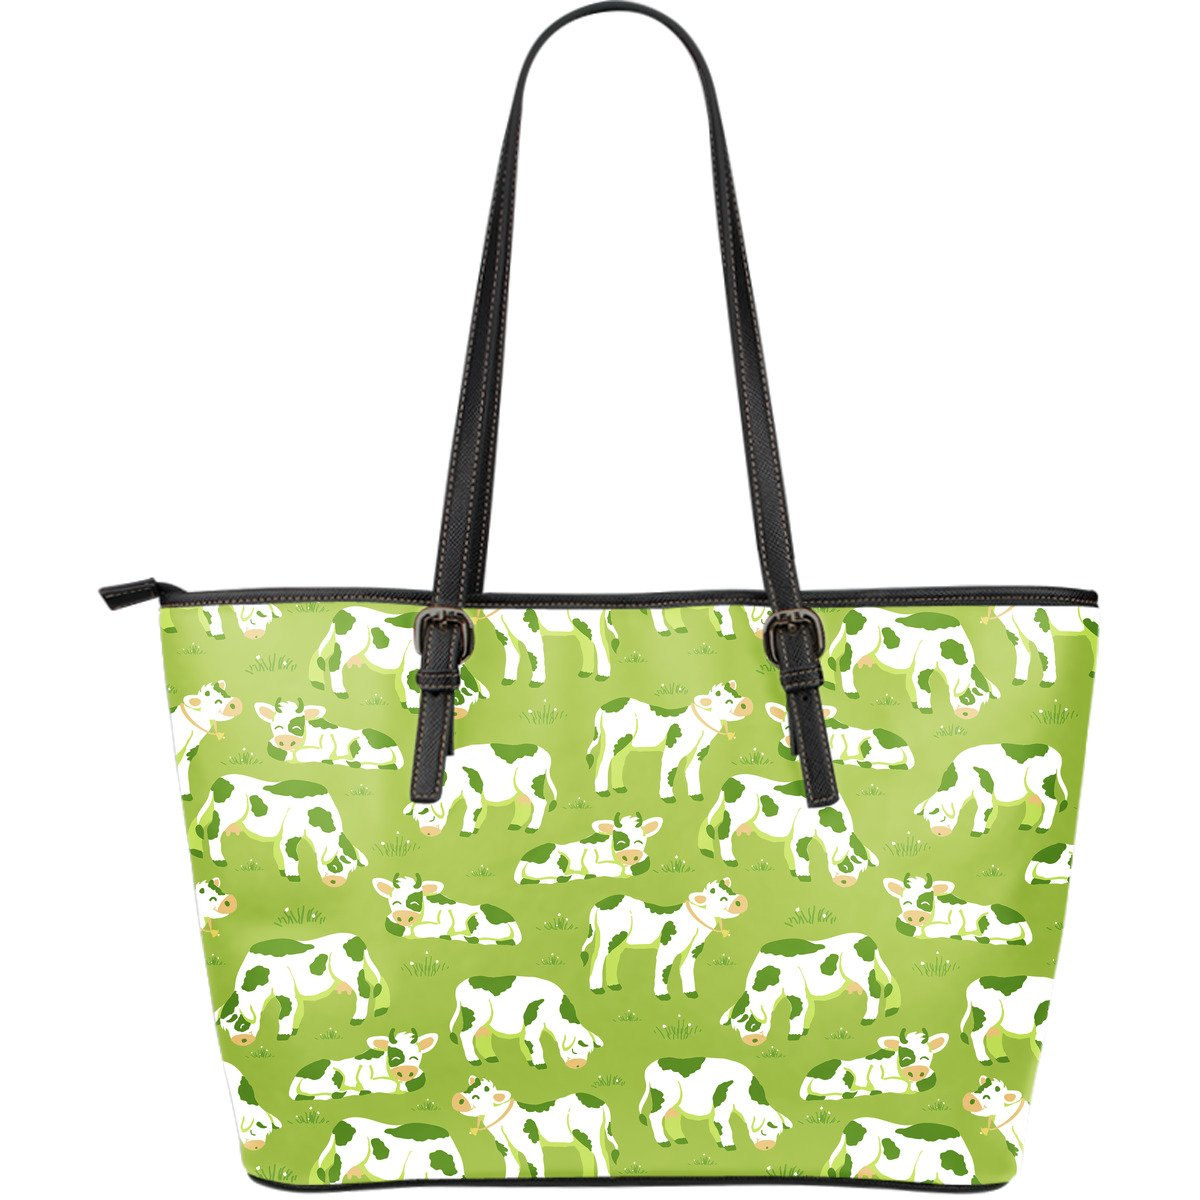 Cute Smiley Cow Pattern Print Leather Tote Bag GearFrost